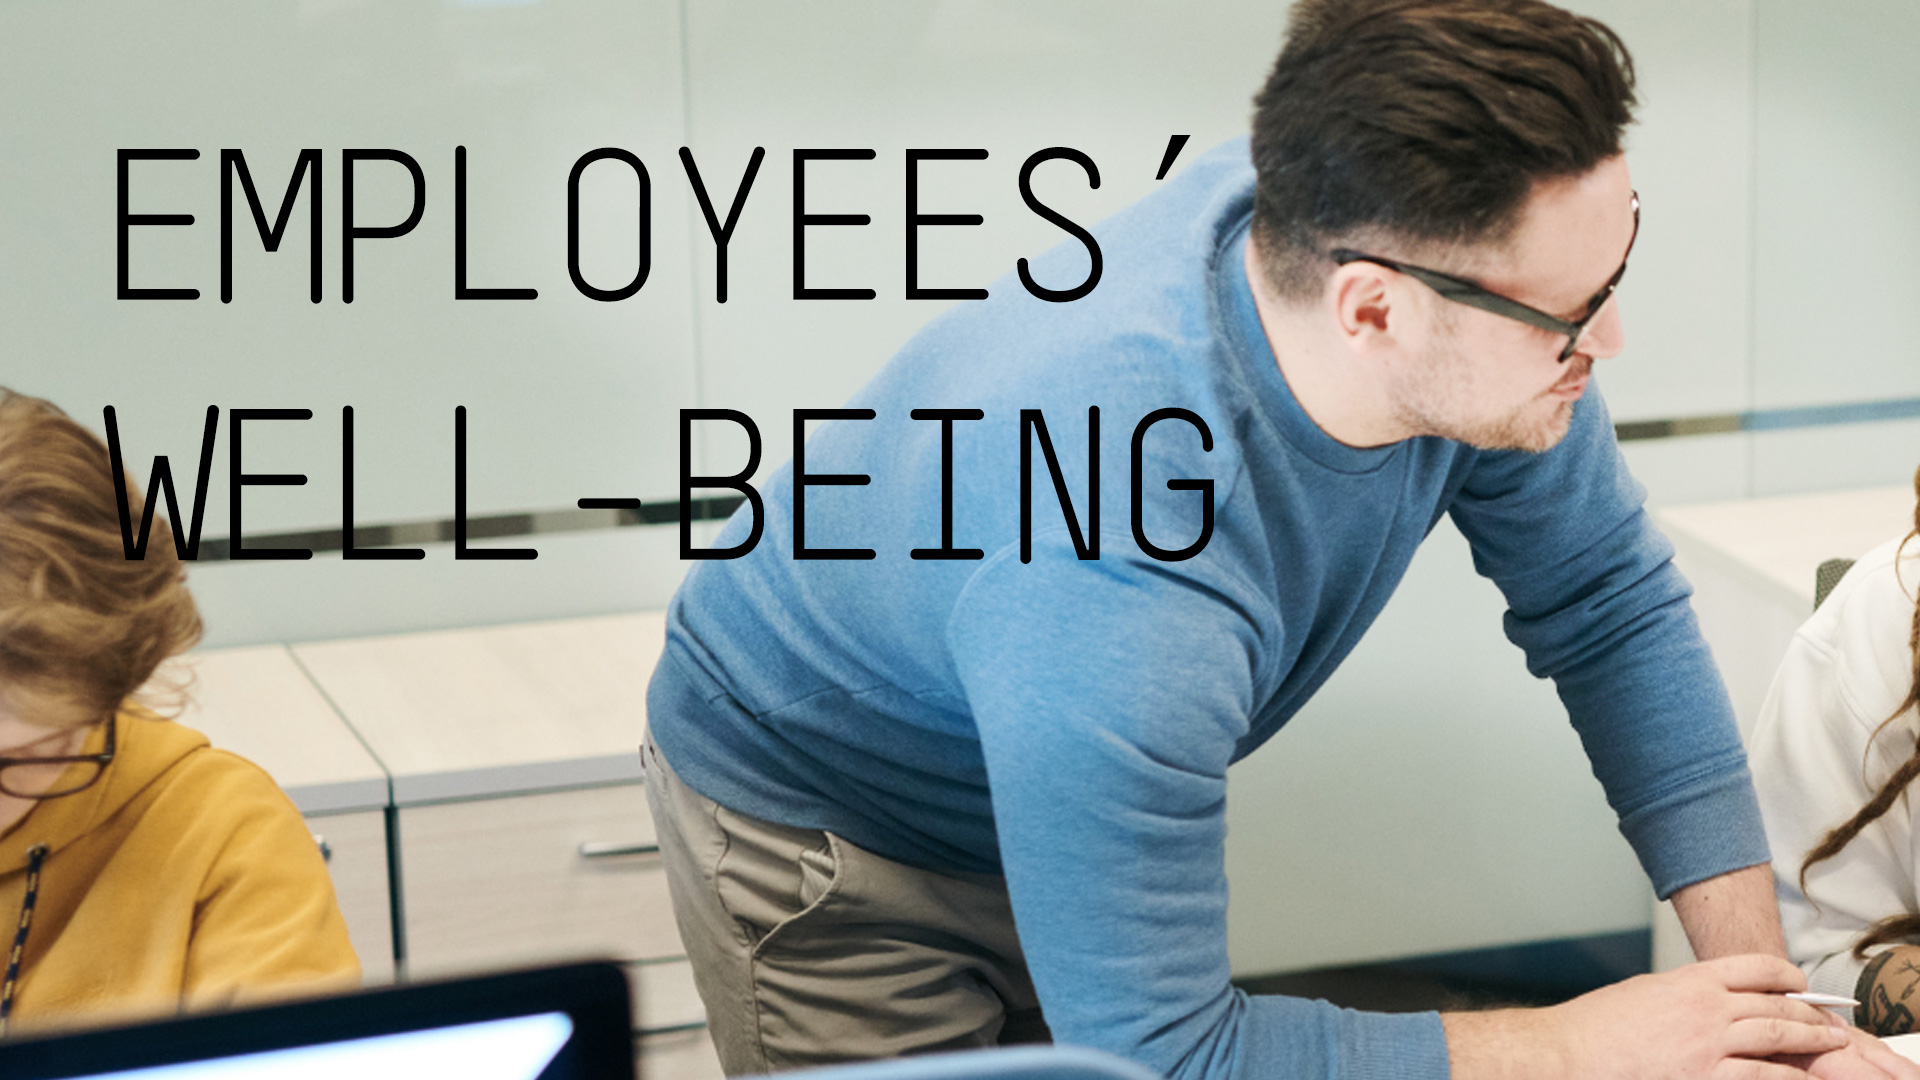 Four tips to elevate your employees' well-being